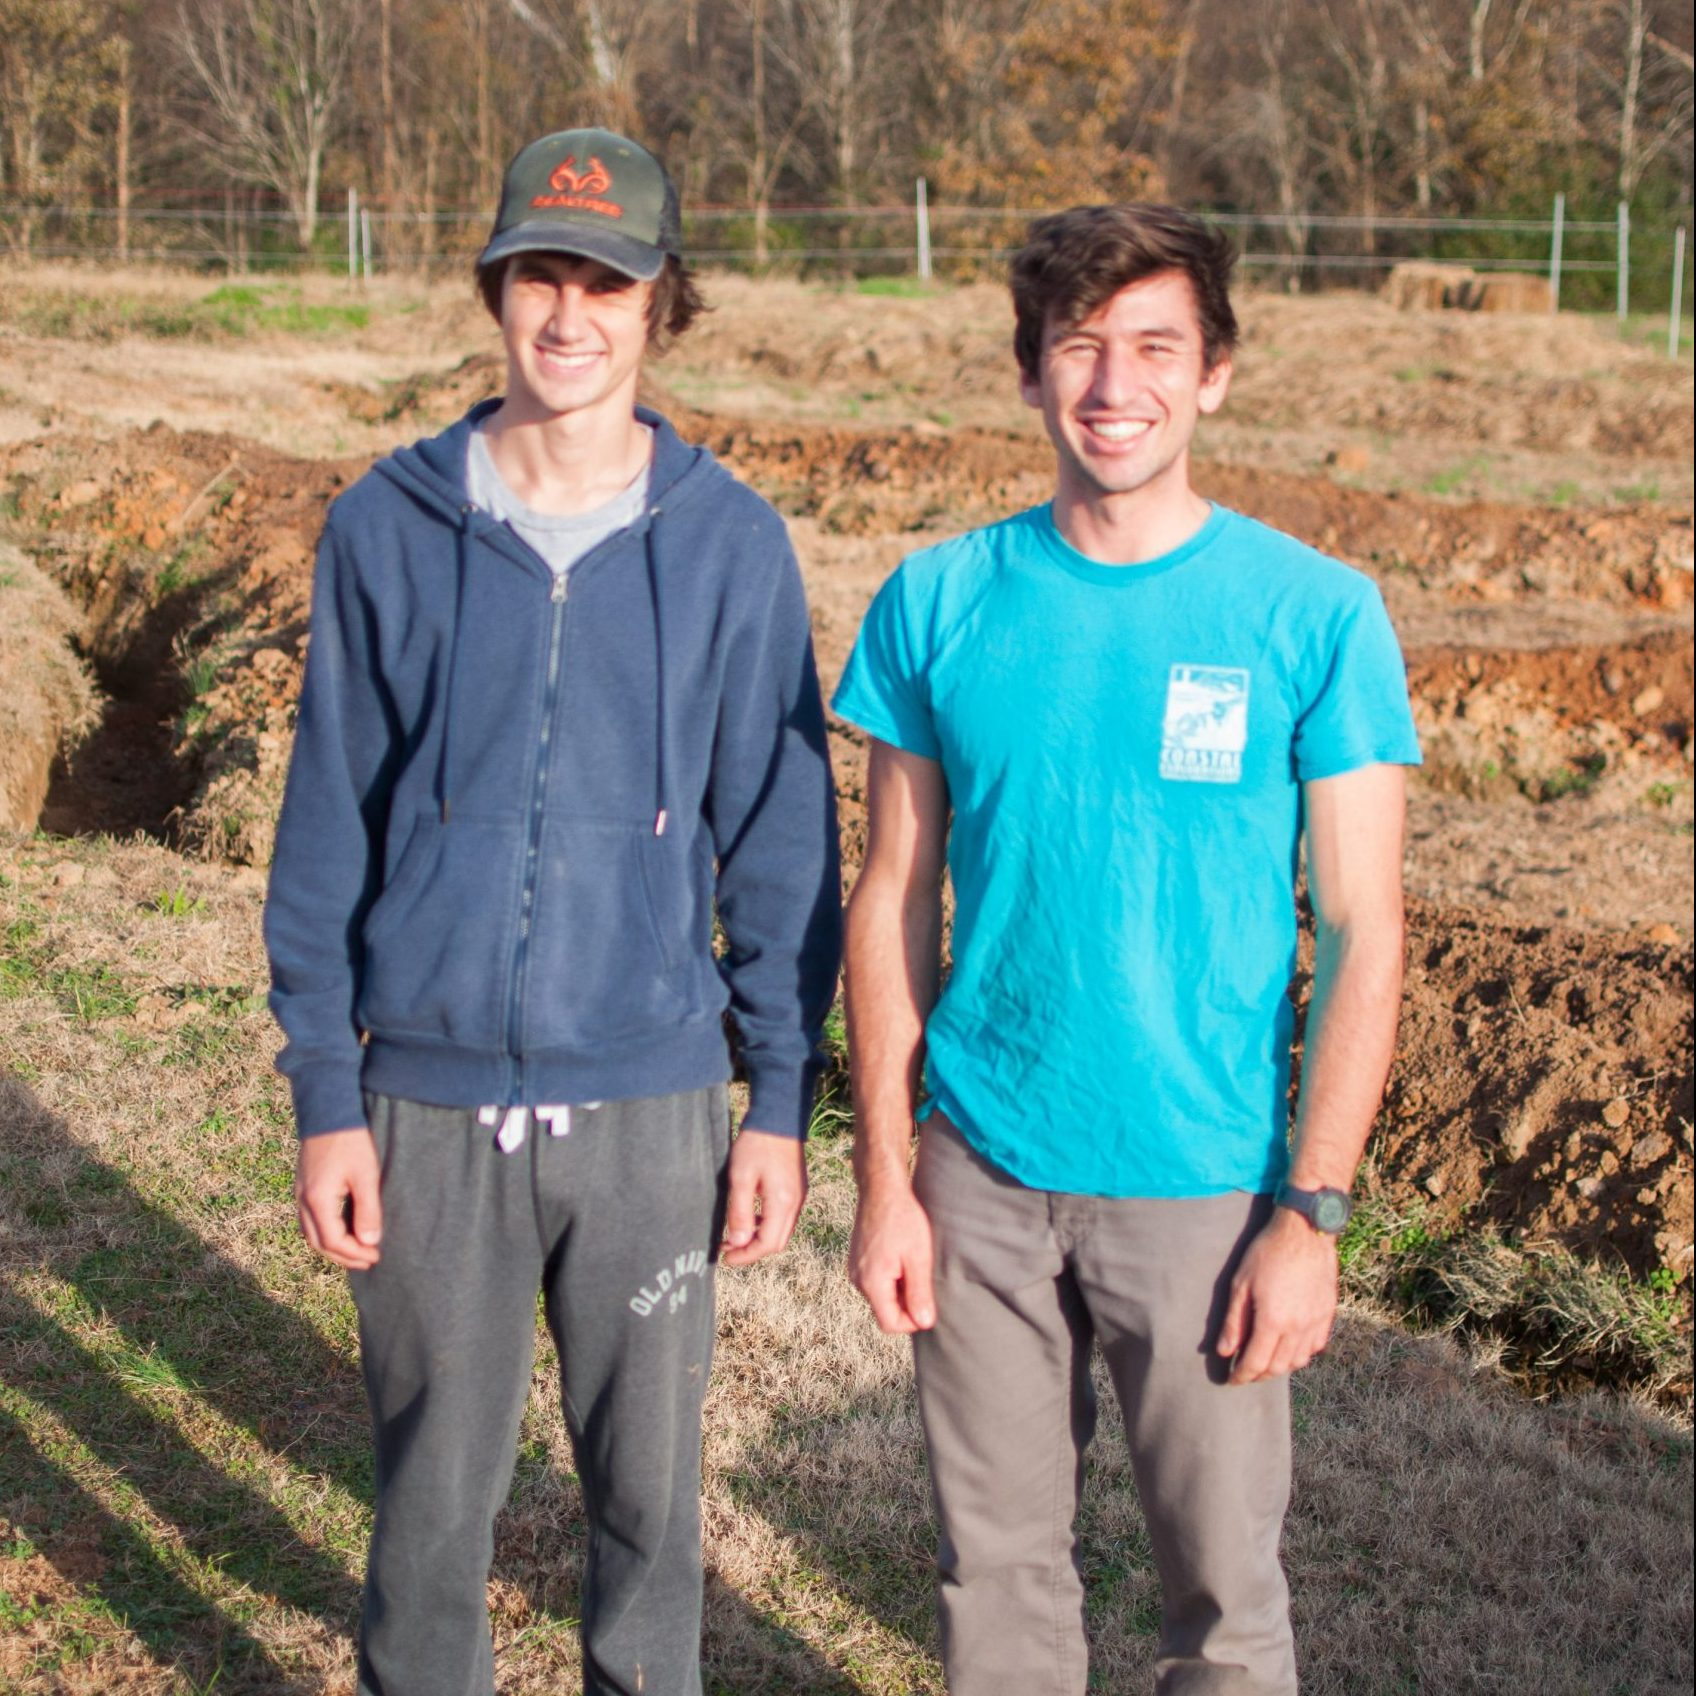 Agroecology students win NC State sustainability grant